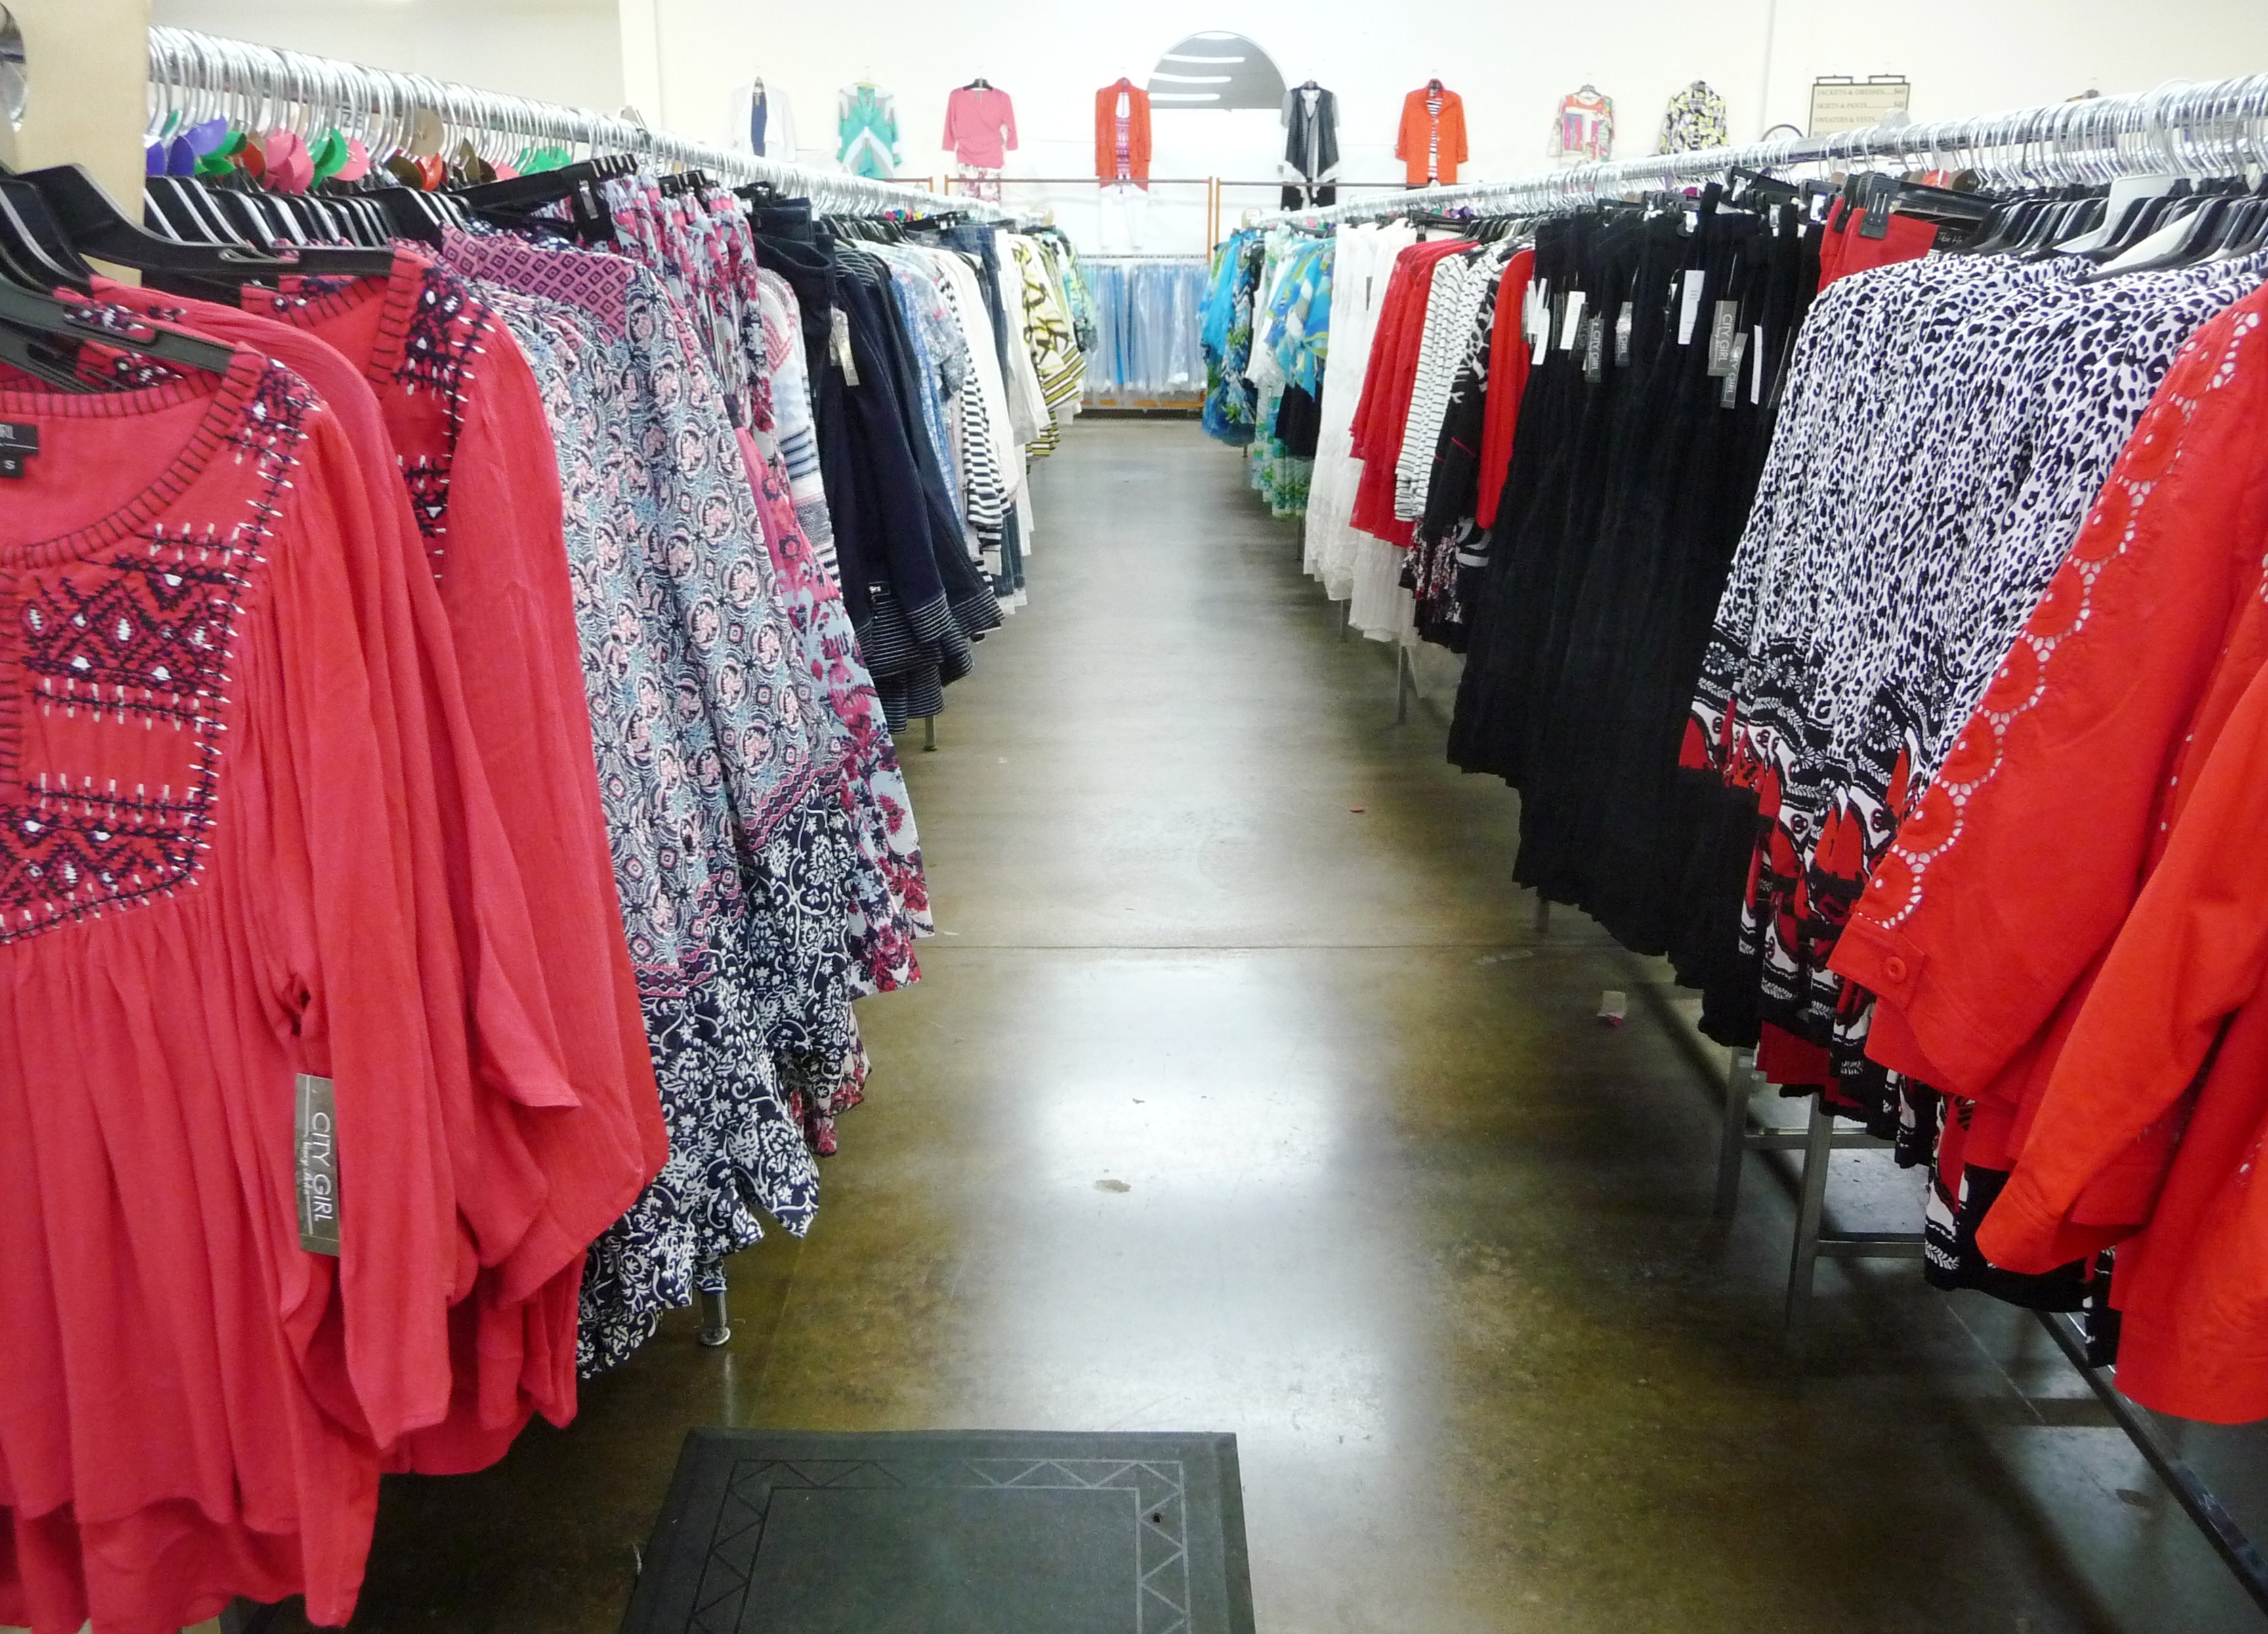 Insiders Look — April 30 to May 2 Sharon Young and Ladies Designer Brand Warehouse Clothing Sale ...